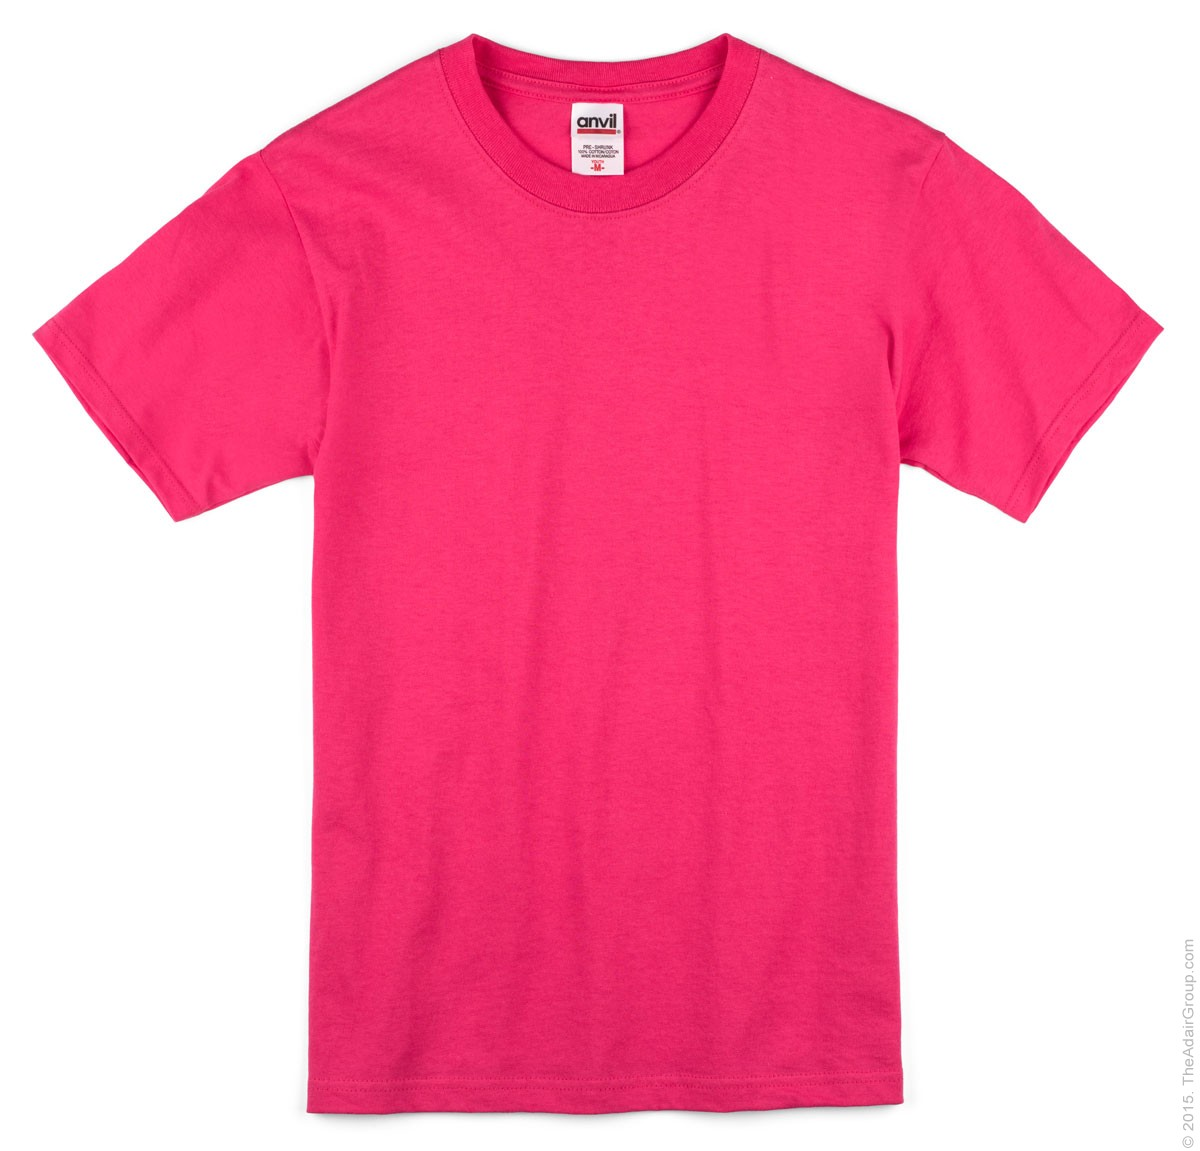 Find great deals on eBay for pink t shirts. Shop with confidence.